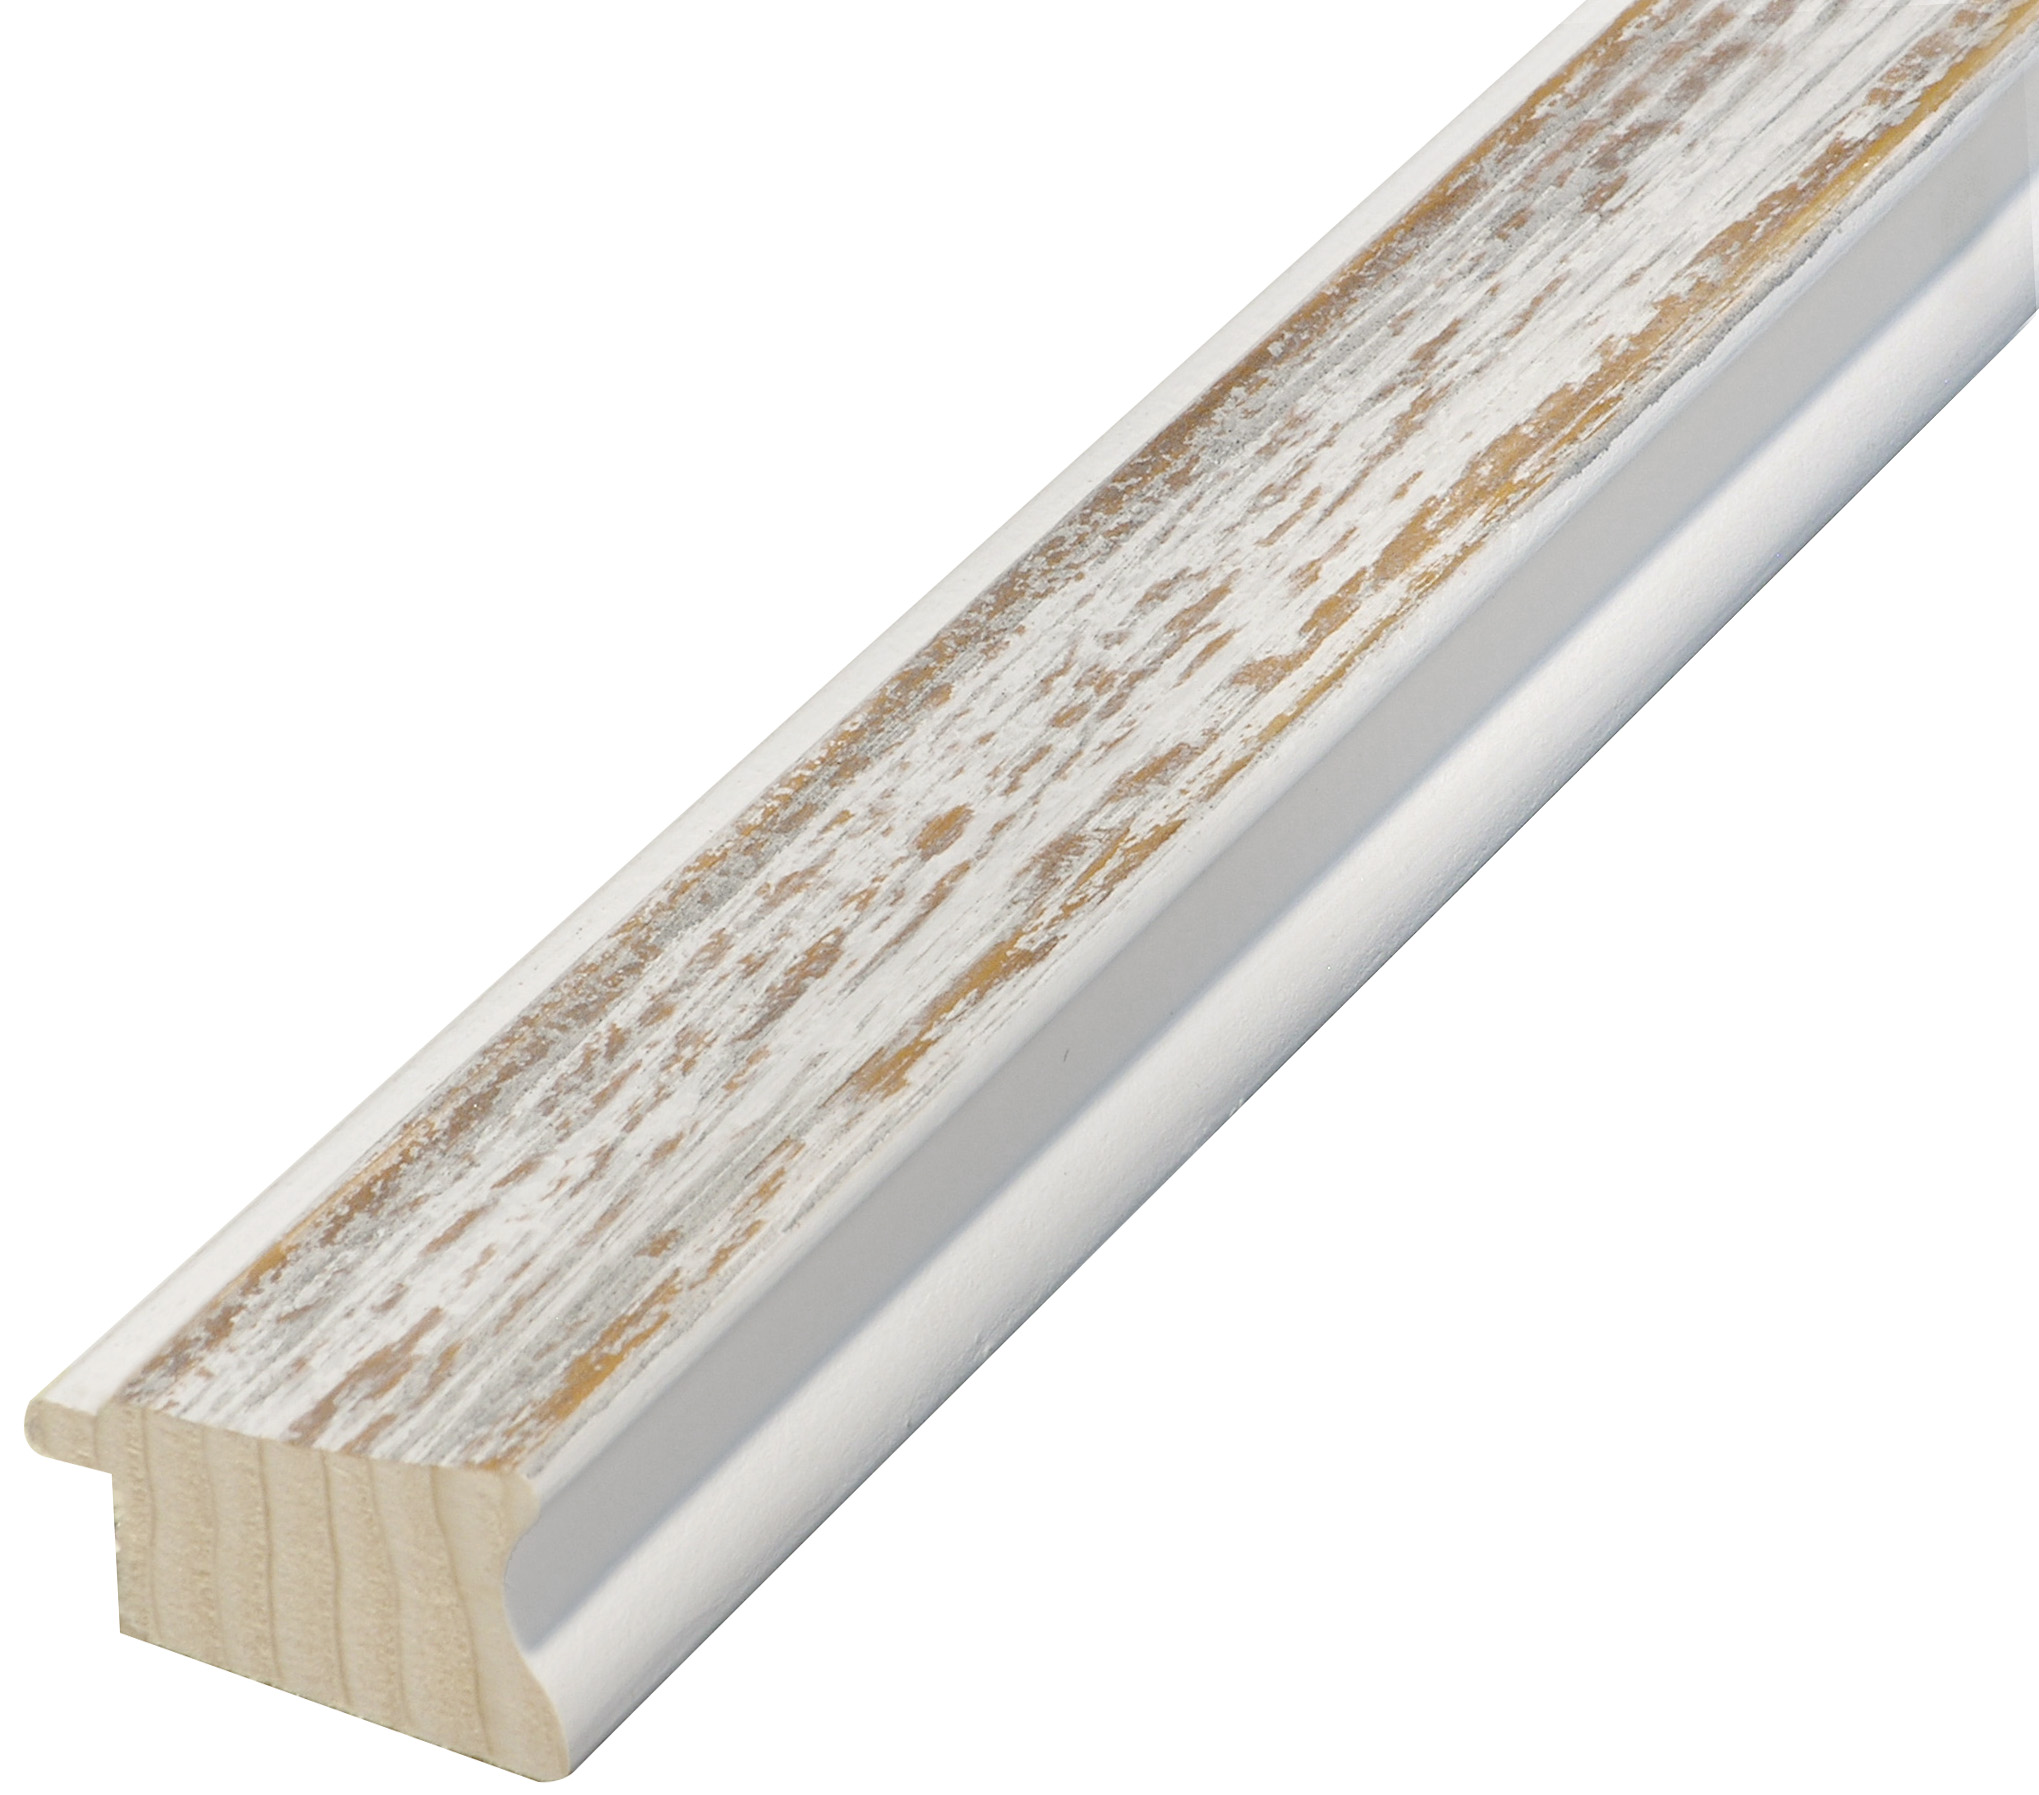 Moulding pine, width 40 mm, distressed white-brown